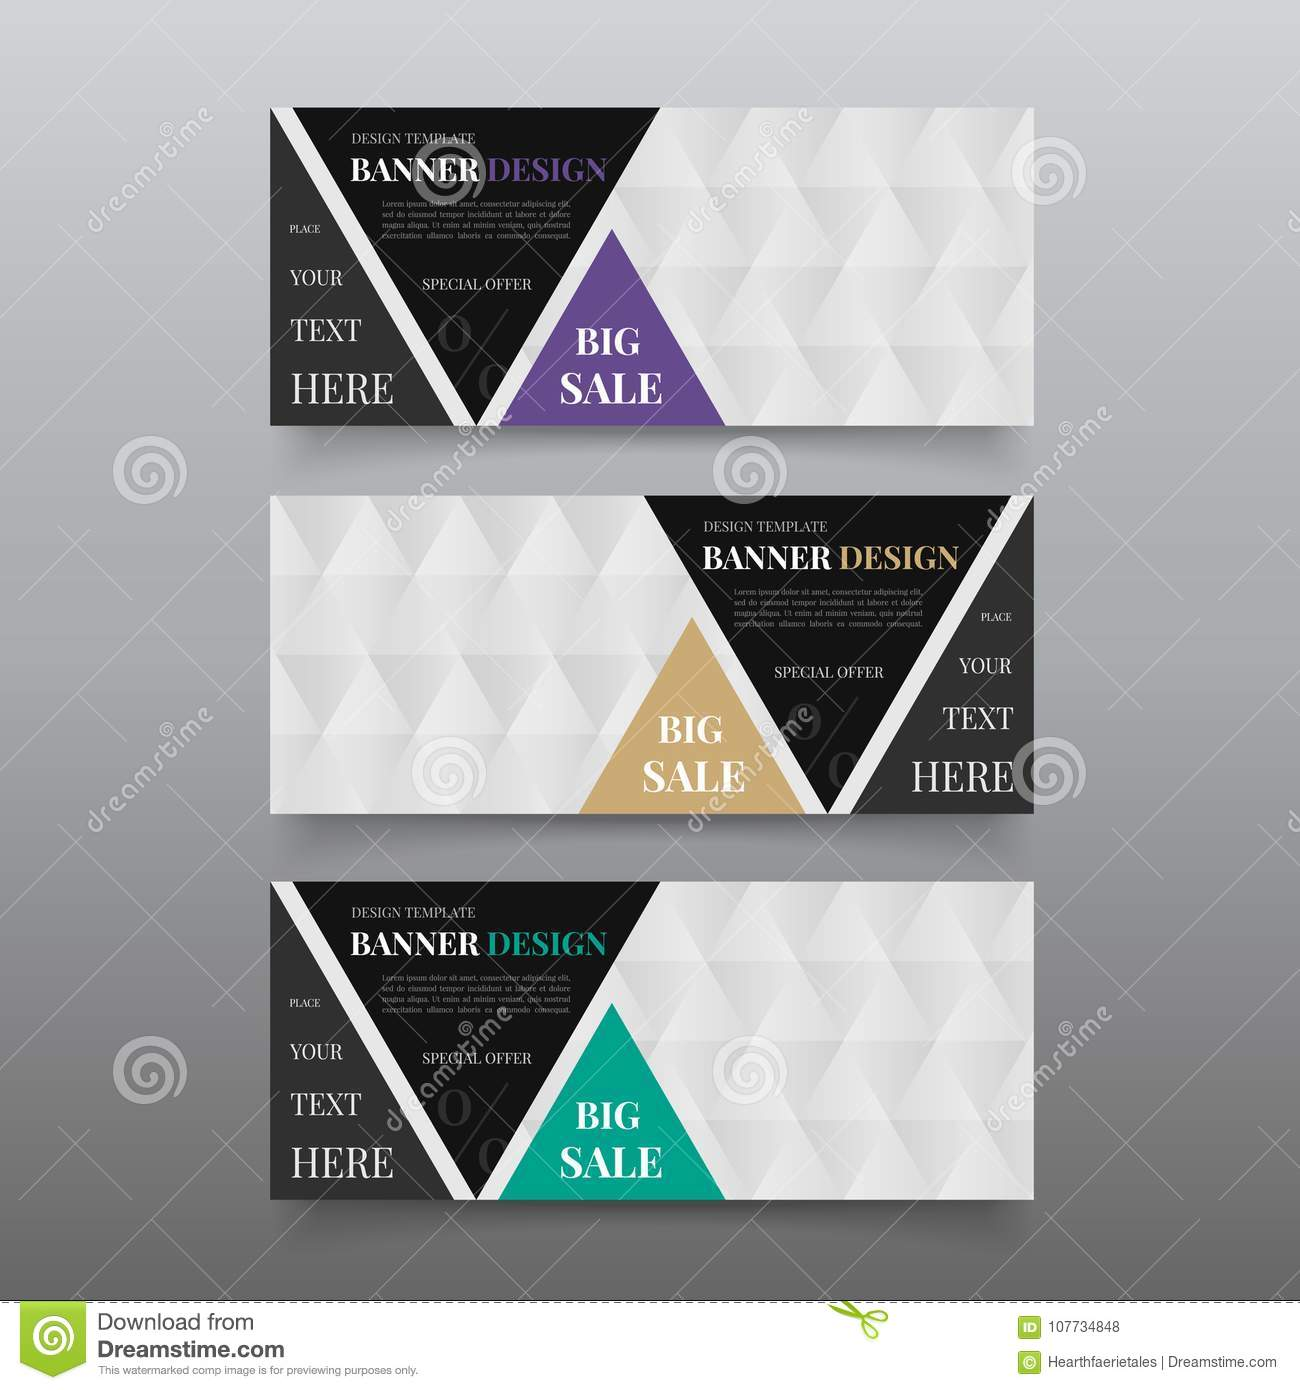 Triangle banner design templates web banner design vector website triangle banner design templates web banner design vector website banner template with text fbccfo Choice Image